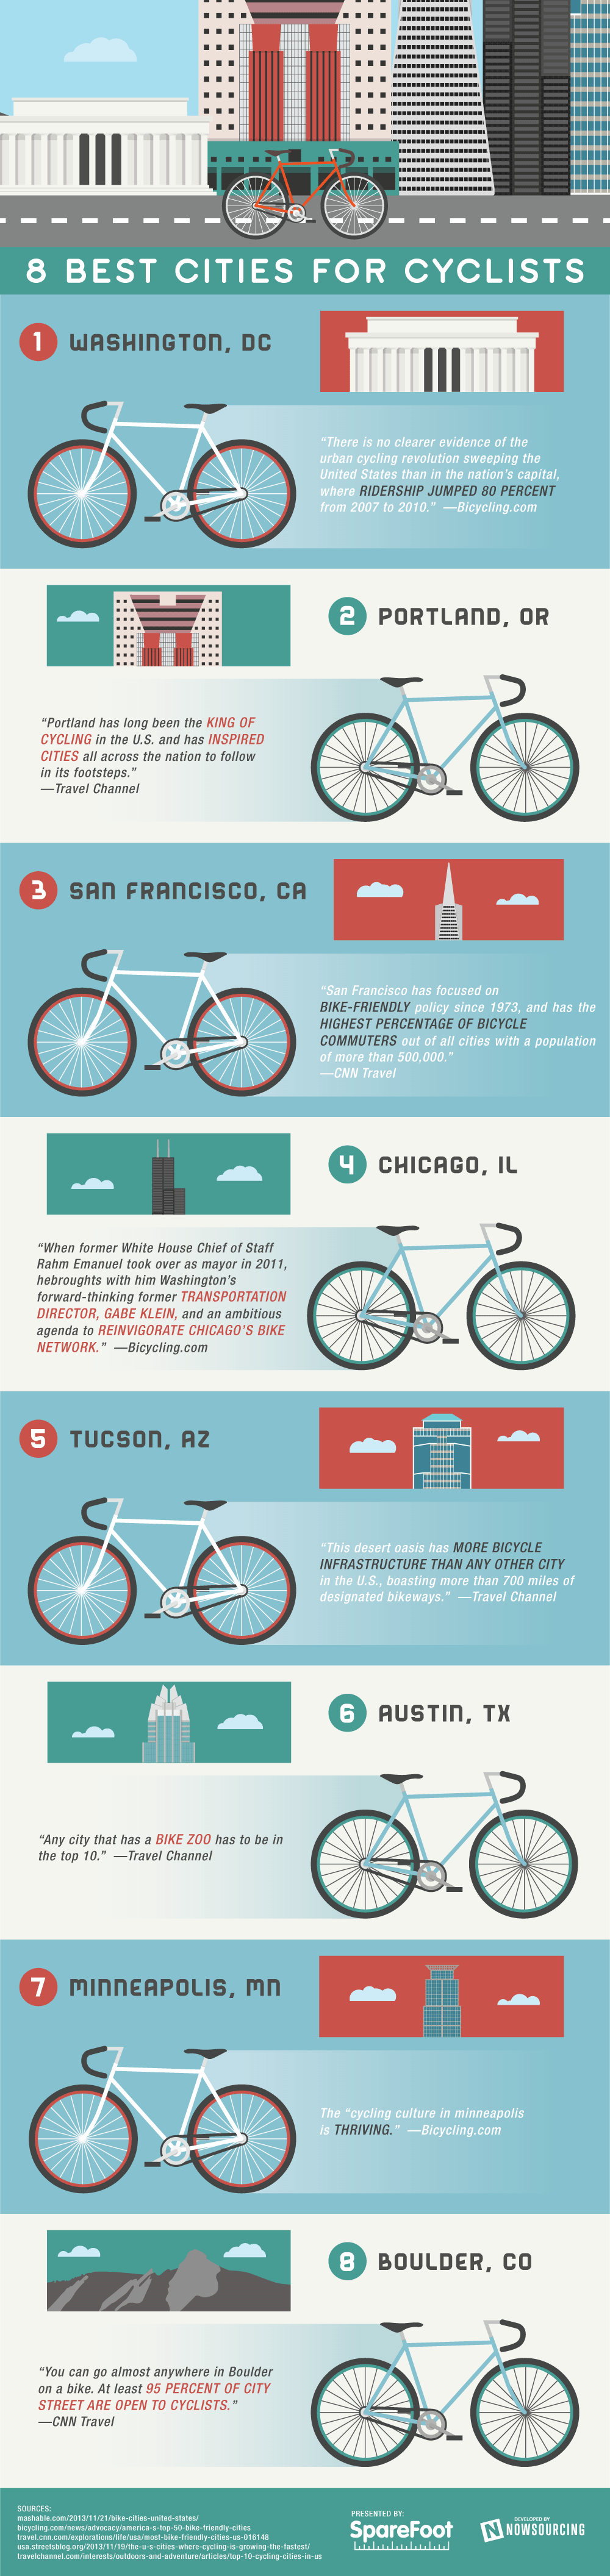 Eight Best Cities for Cyclists